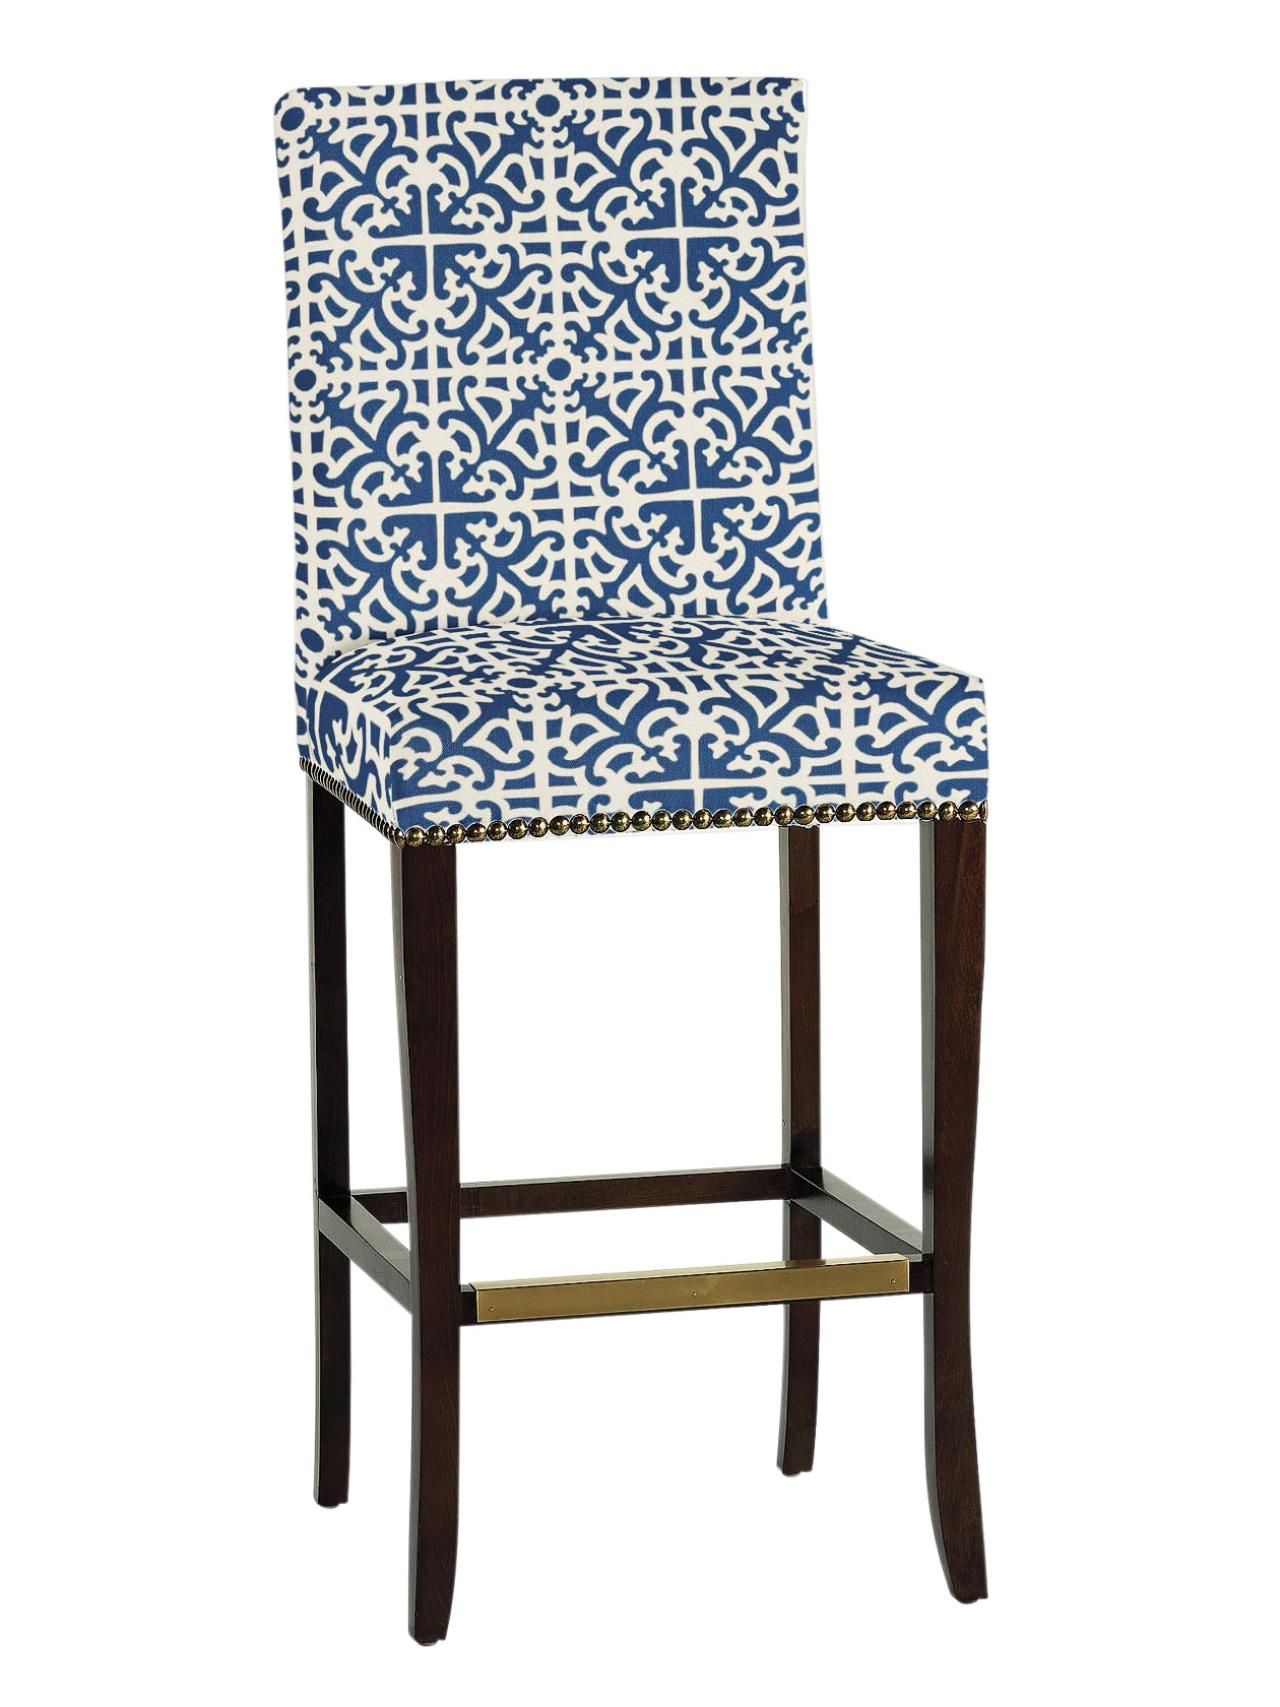 Patterned Bar Stools Unique Inspiration Design